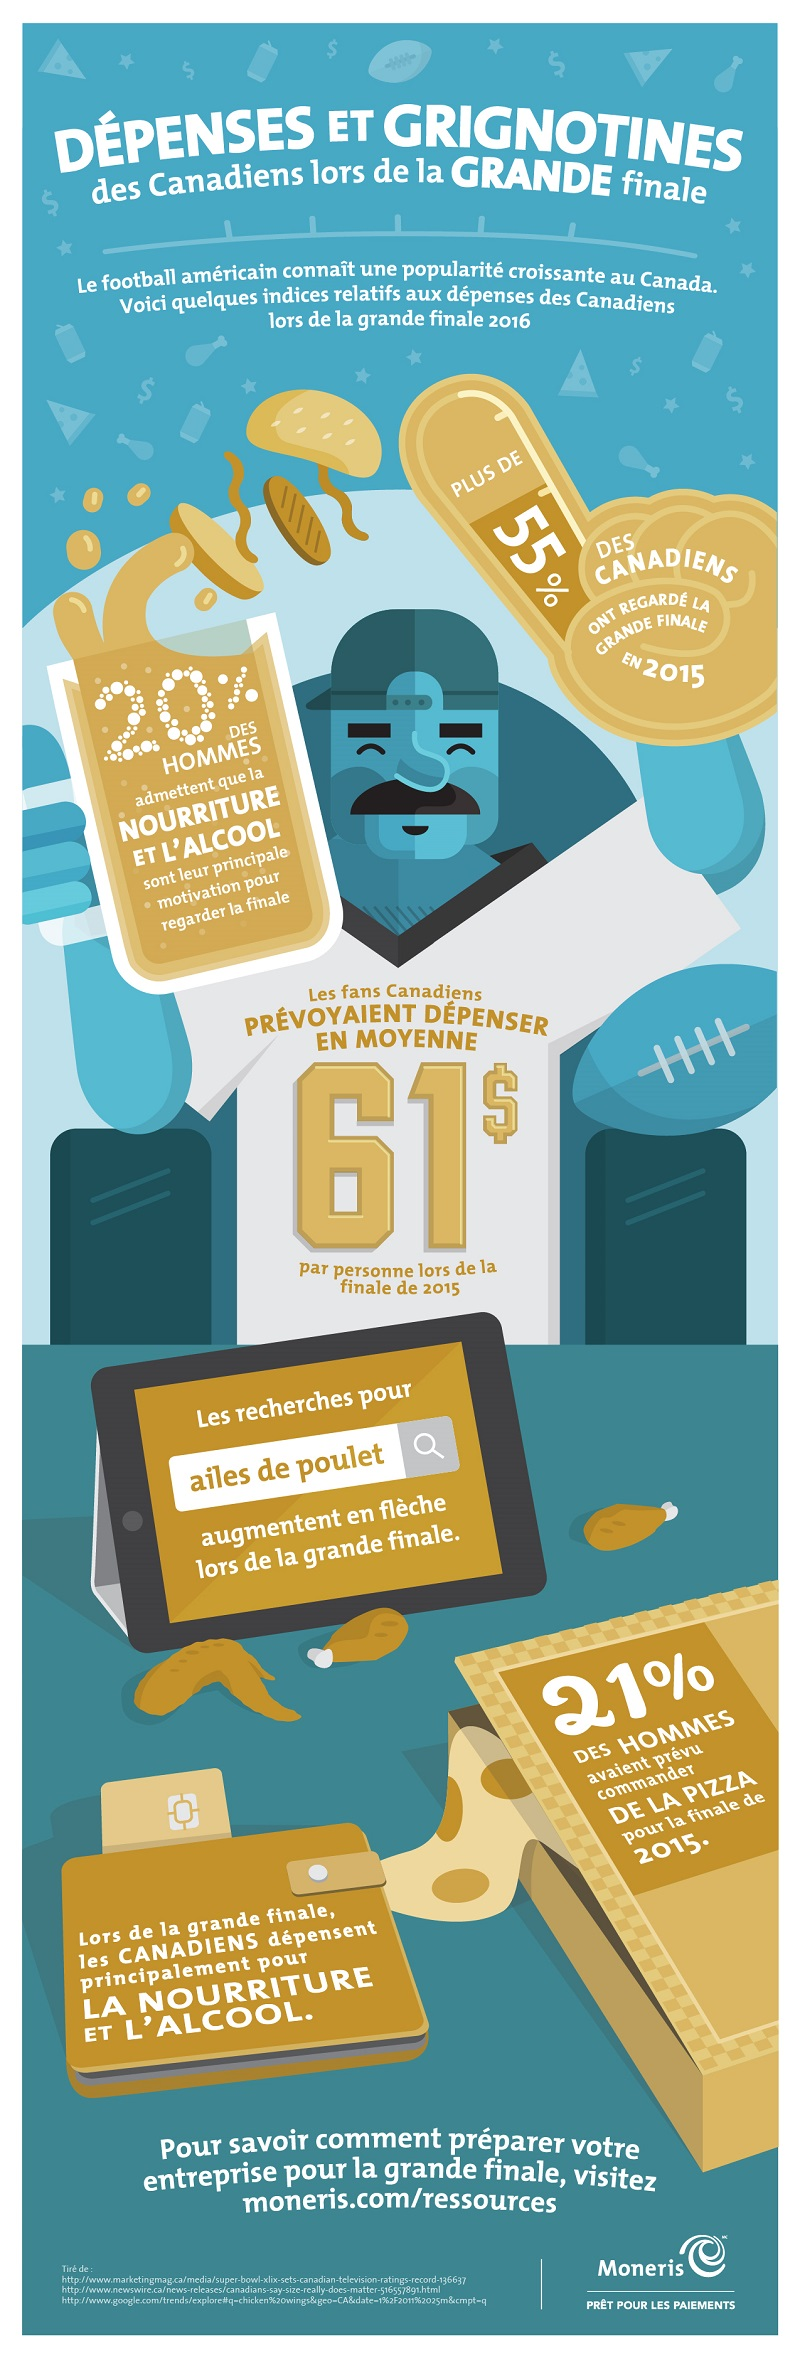 superbowl-spending-moneris-infographic-football-2016